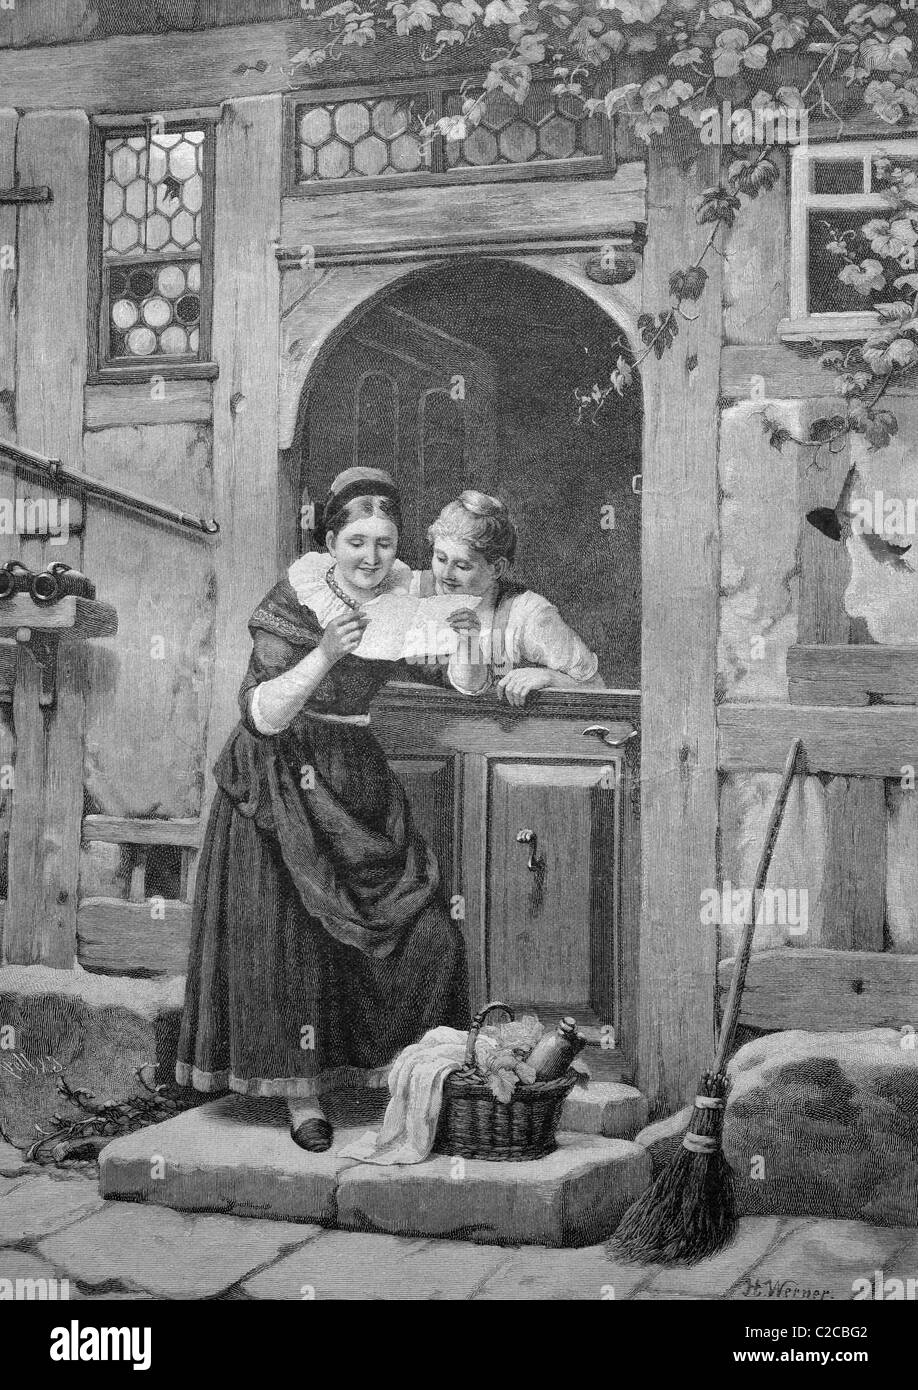 Love letters, historical illustration, ca. 1893 - Stock Image